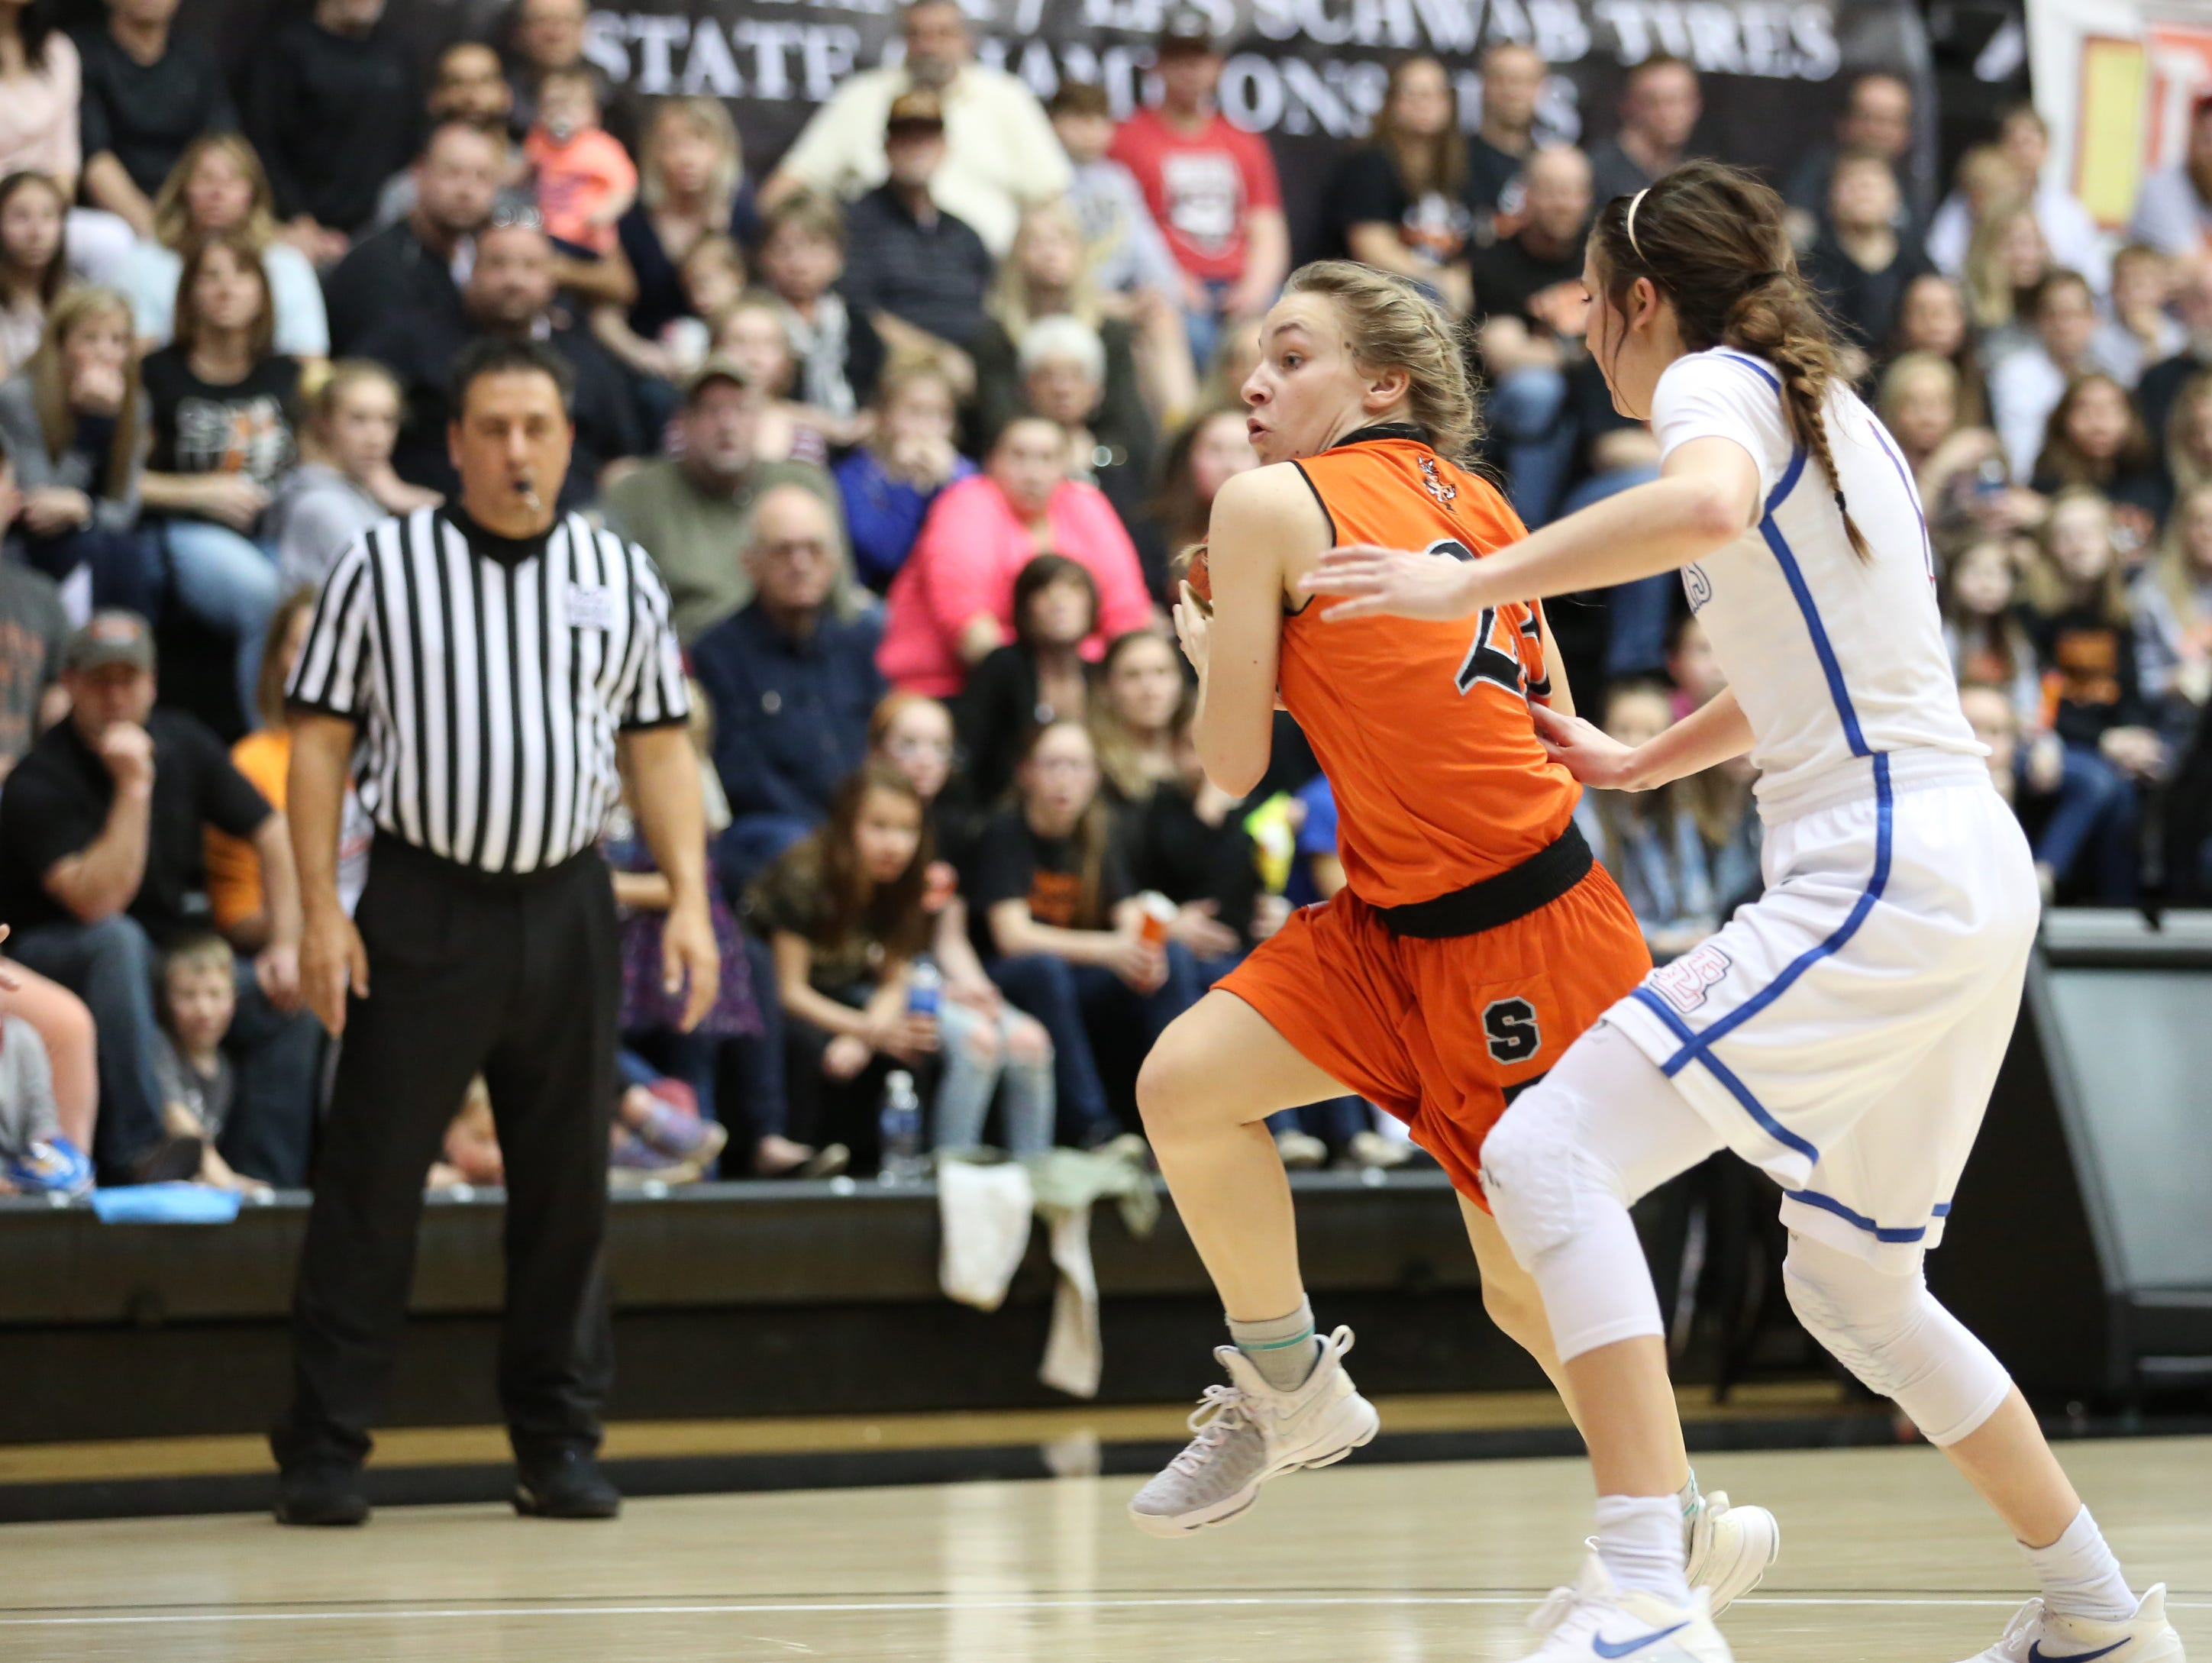 Silverton's Paige Alexander and the Foxes fall to La Salle 42-28 in the OSAA Class 5A state championship on Friday, March 10, 2017, at Gill Coliseum in Corvallis.